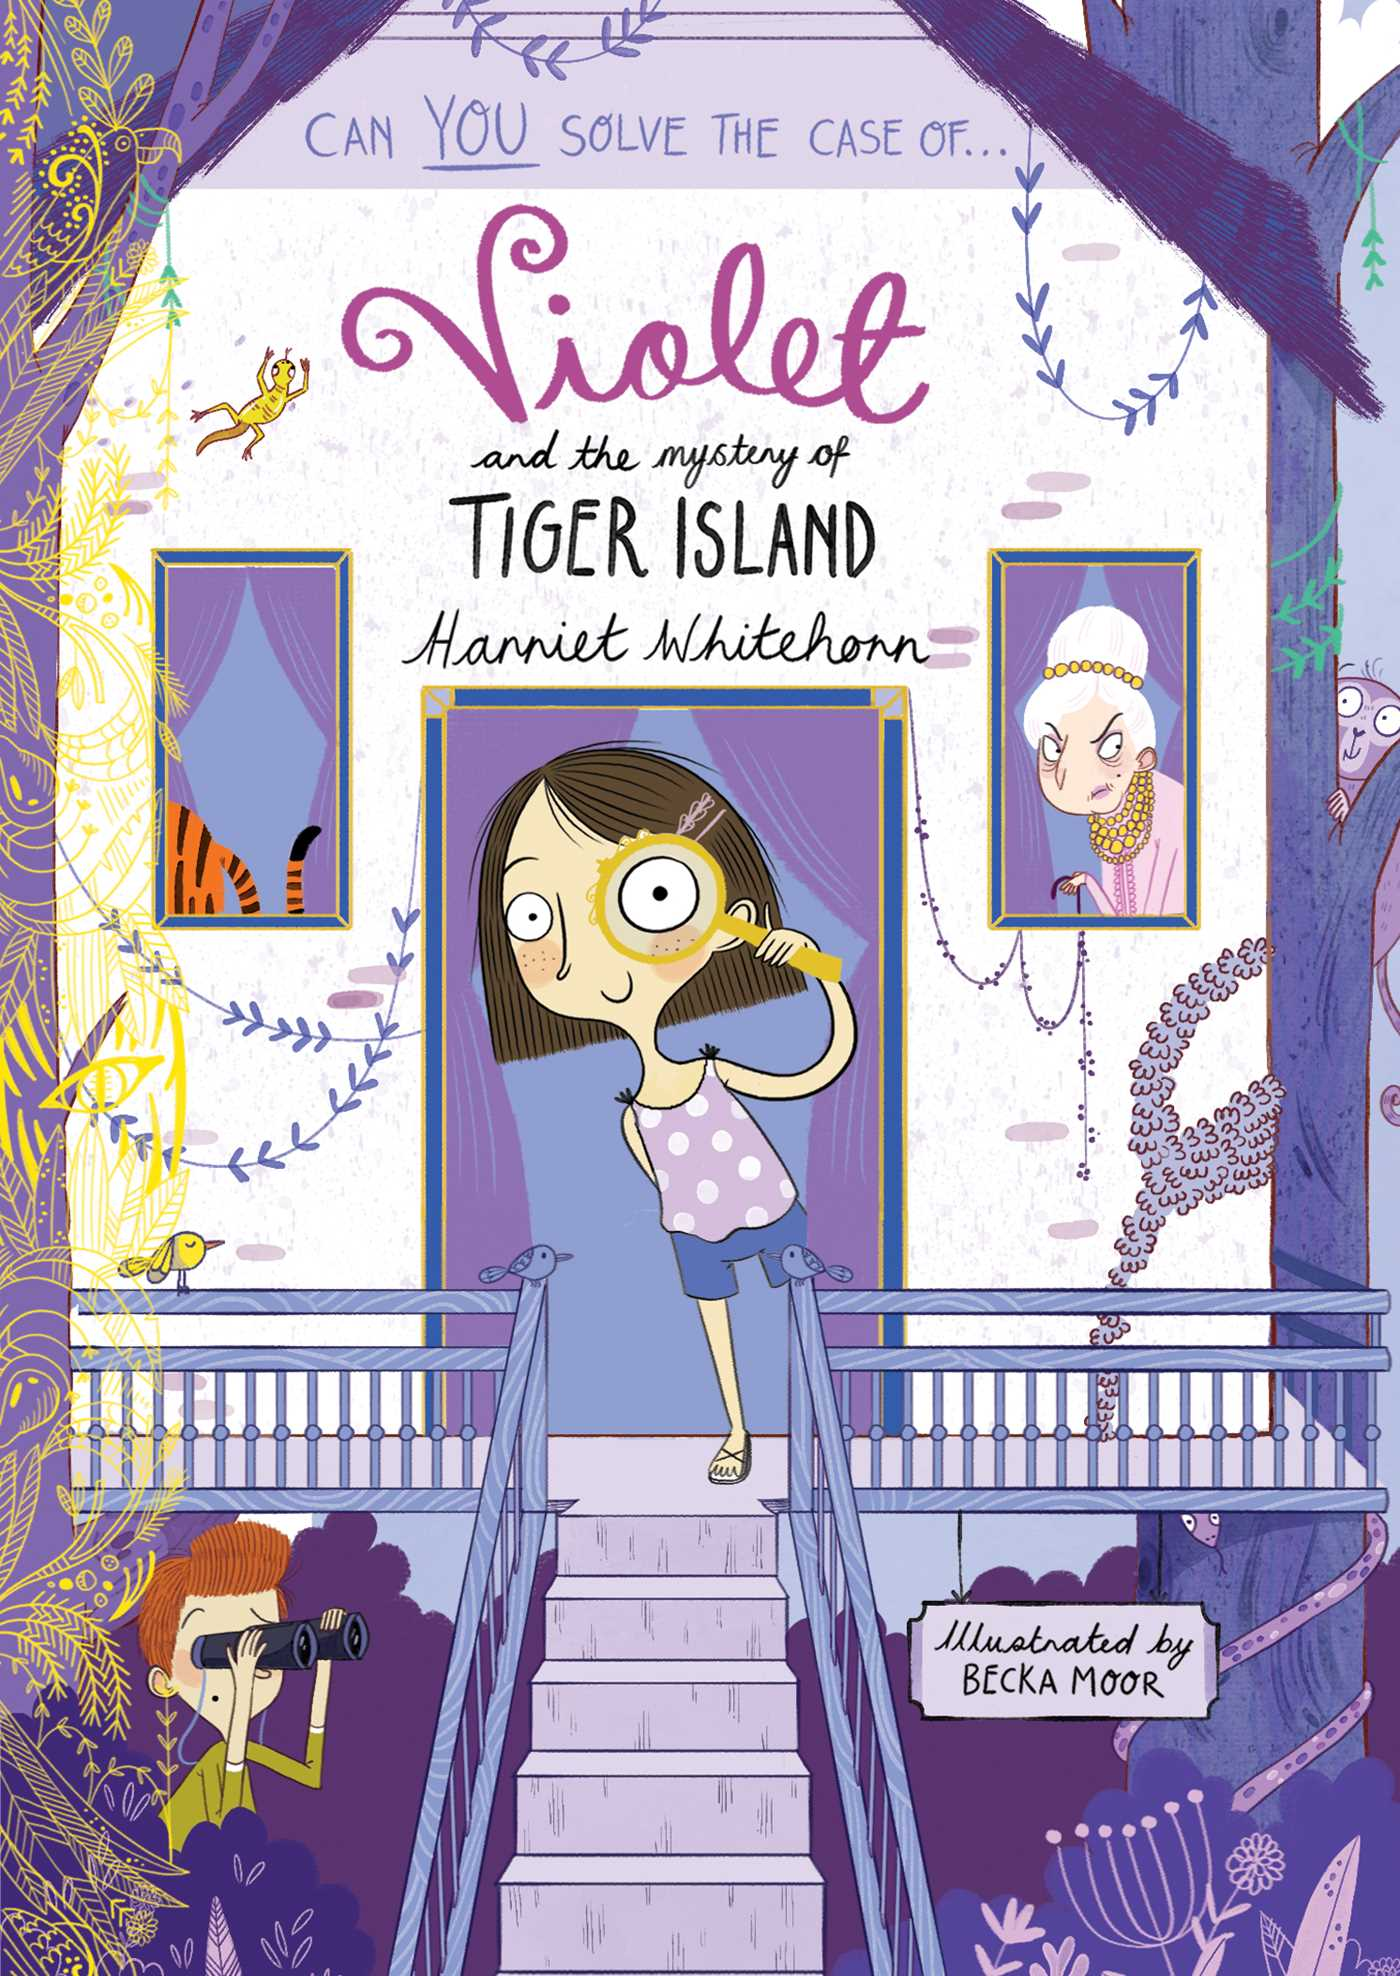 Violet and the mystery of tiger island 9781471147227 hr